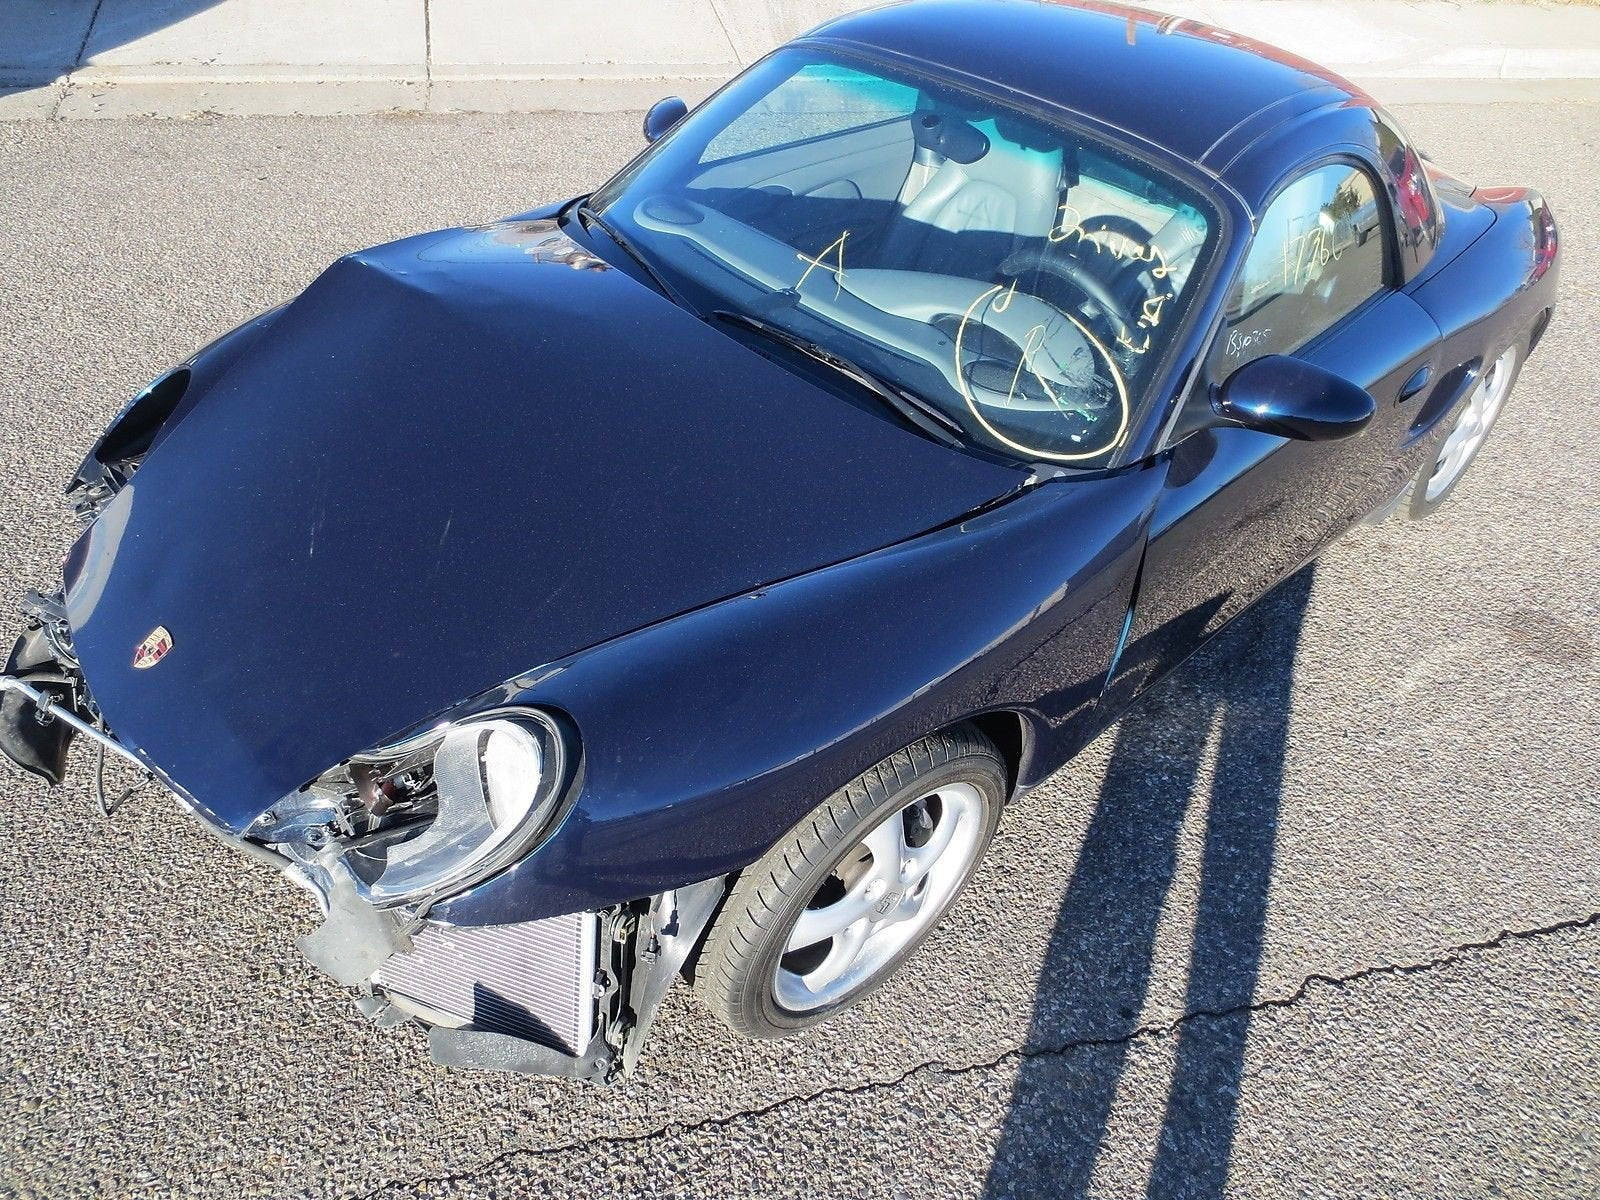 98 Porsche 986 911 BOXSTER Parting Out car parts part 17,360